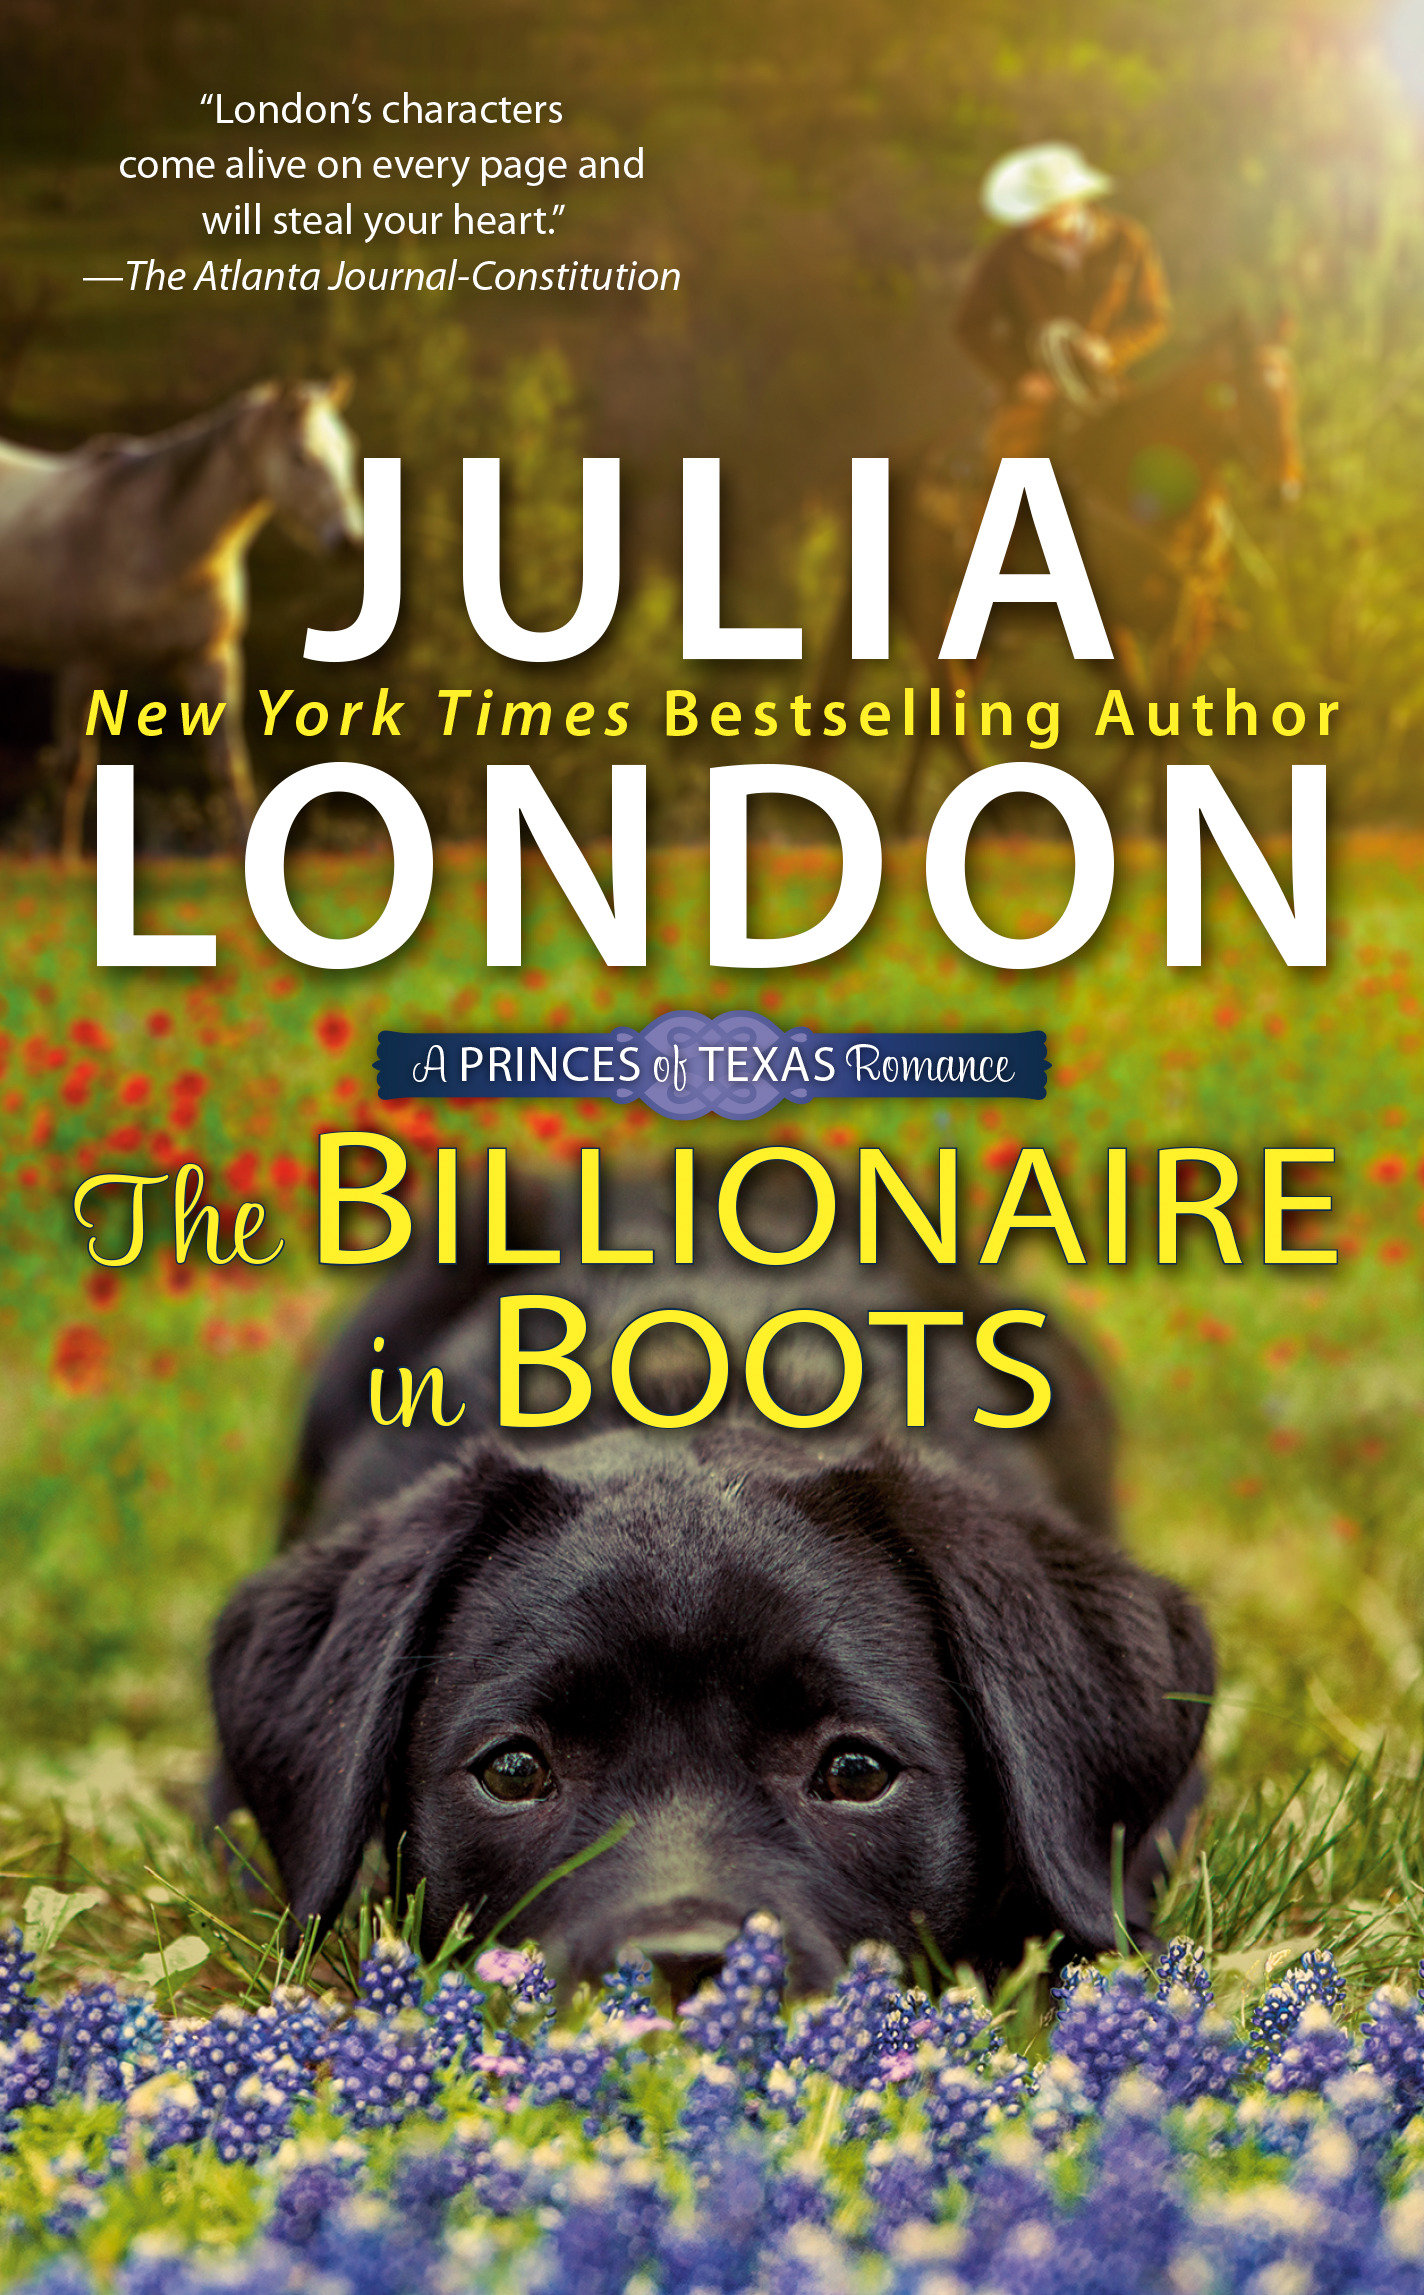 The Billionaire in Boots [electronic resource]